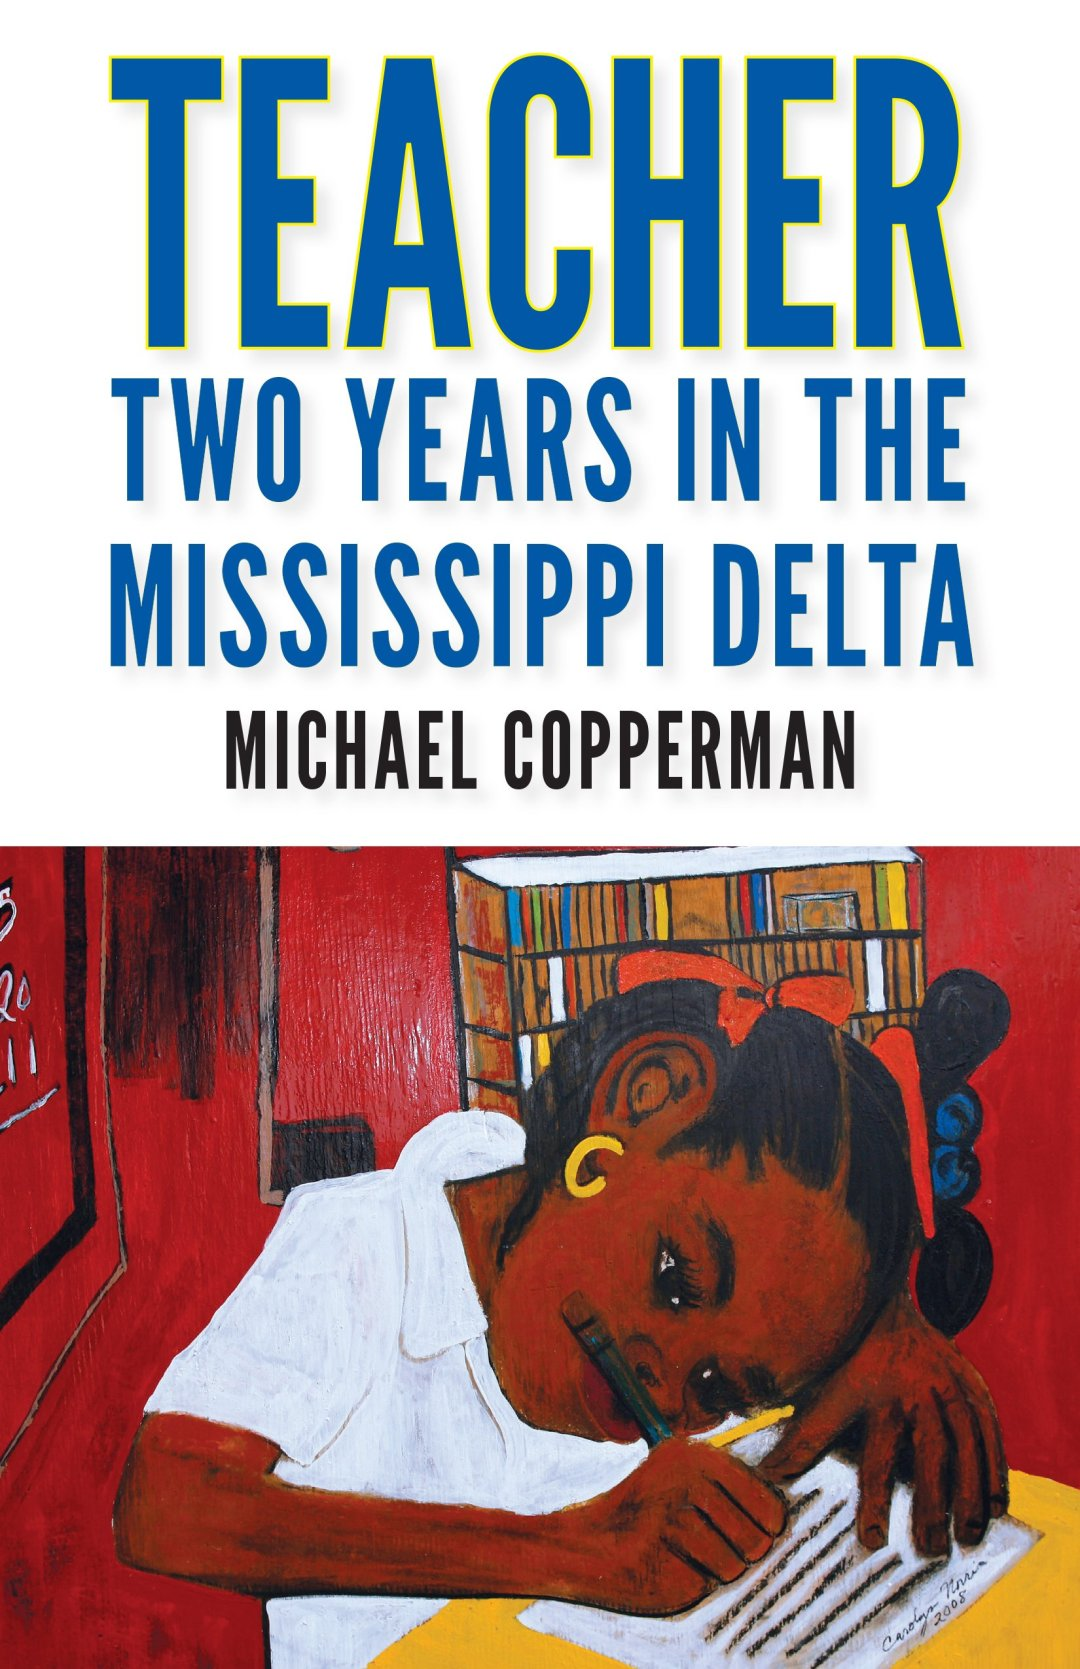 Cover of the book TEACHER: TWO YEARS TEACHING IN THE MISSISSIPPI DELTA by MICHAEL COPPERMAN